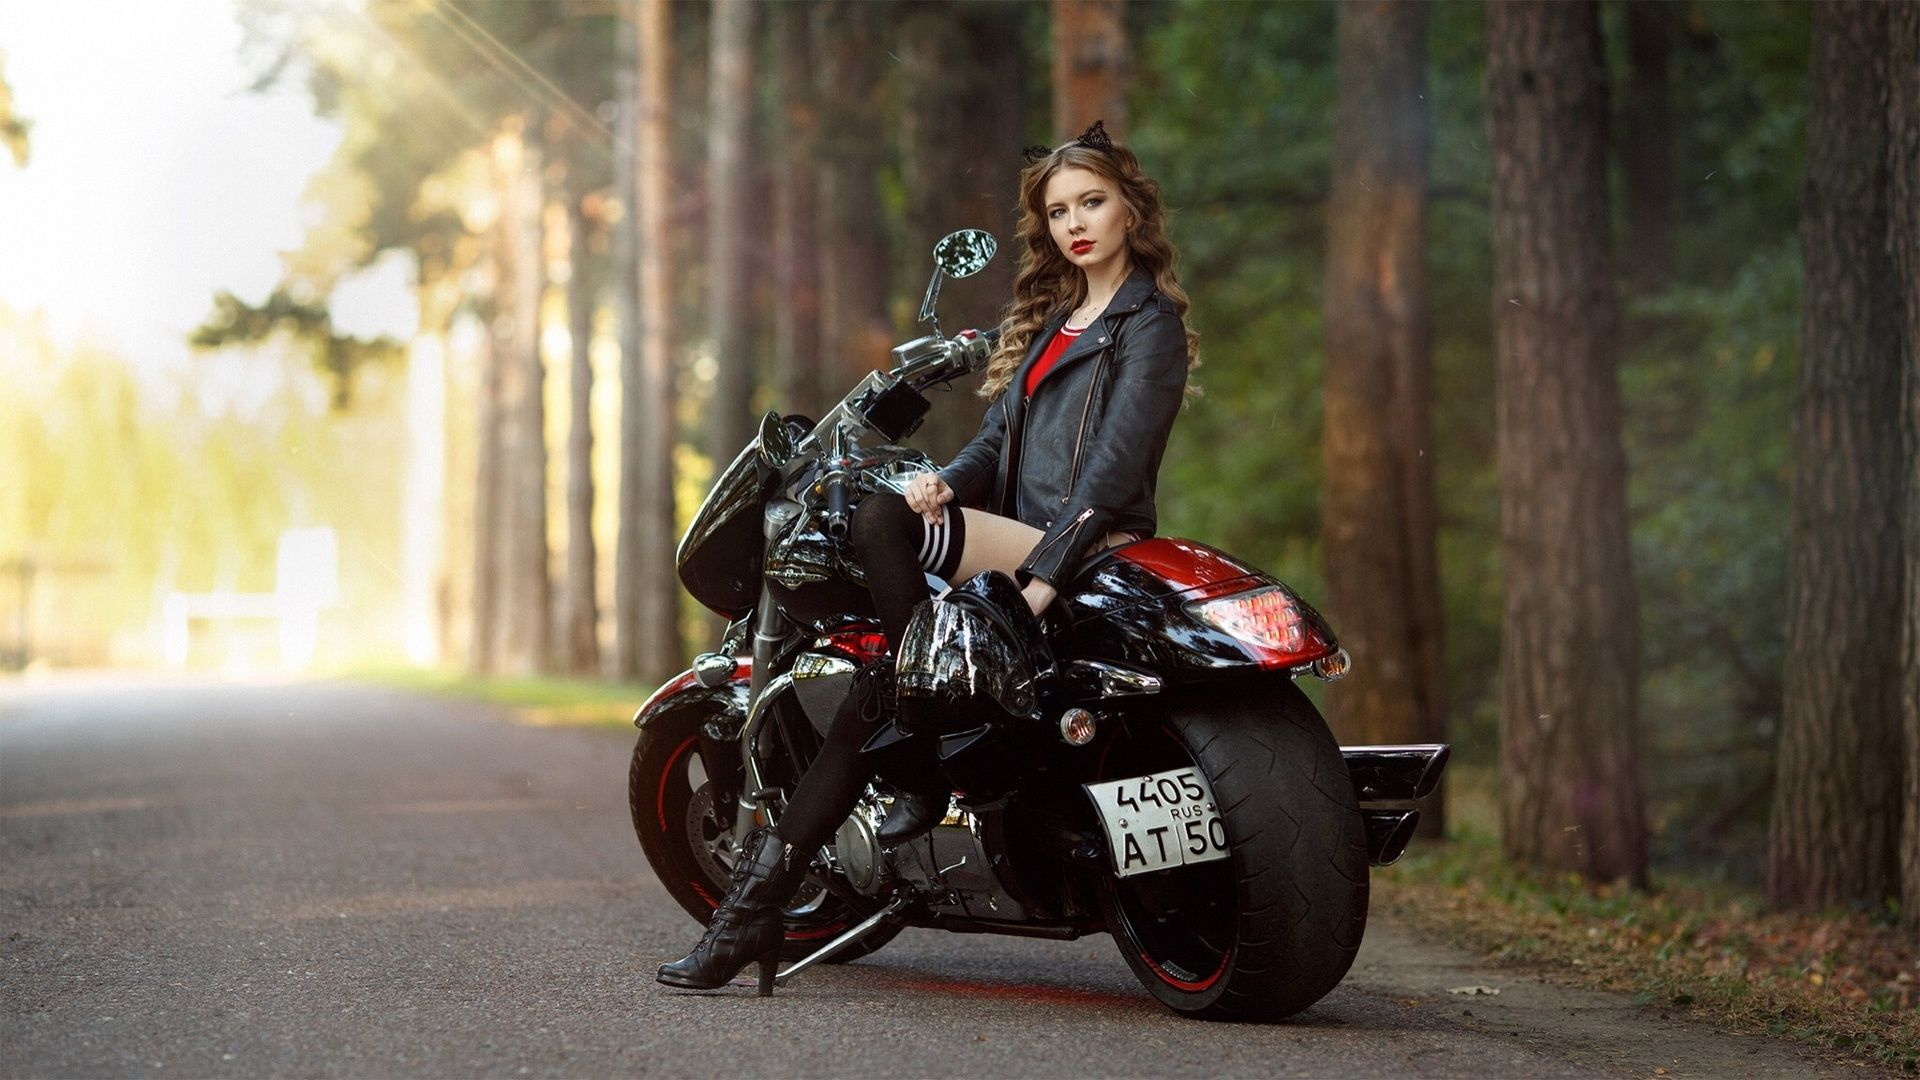 Girl Motorcycle Wallpapers Top Free Girl Motorcycle Backgrounds Wallpaperaccess